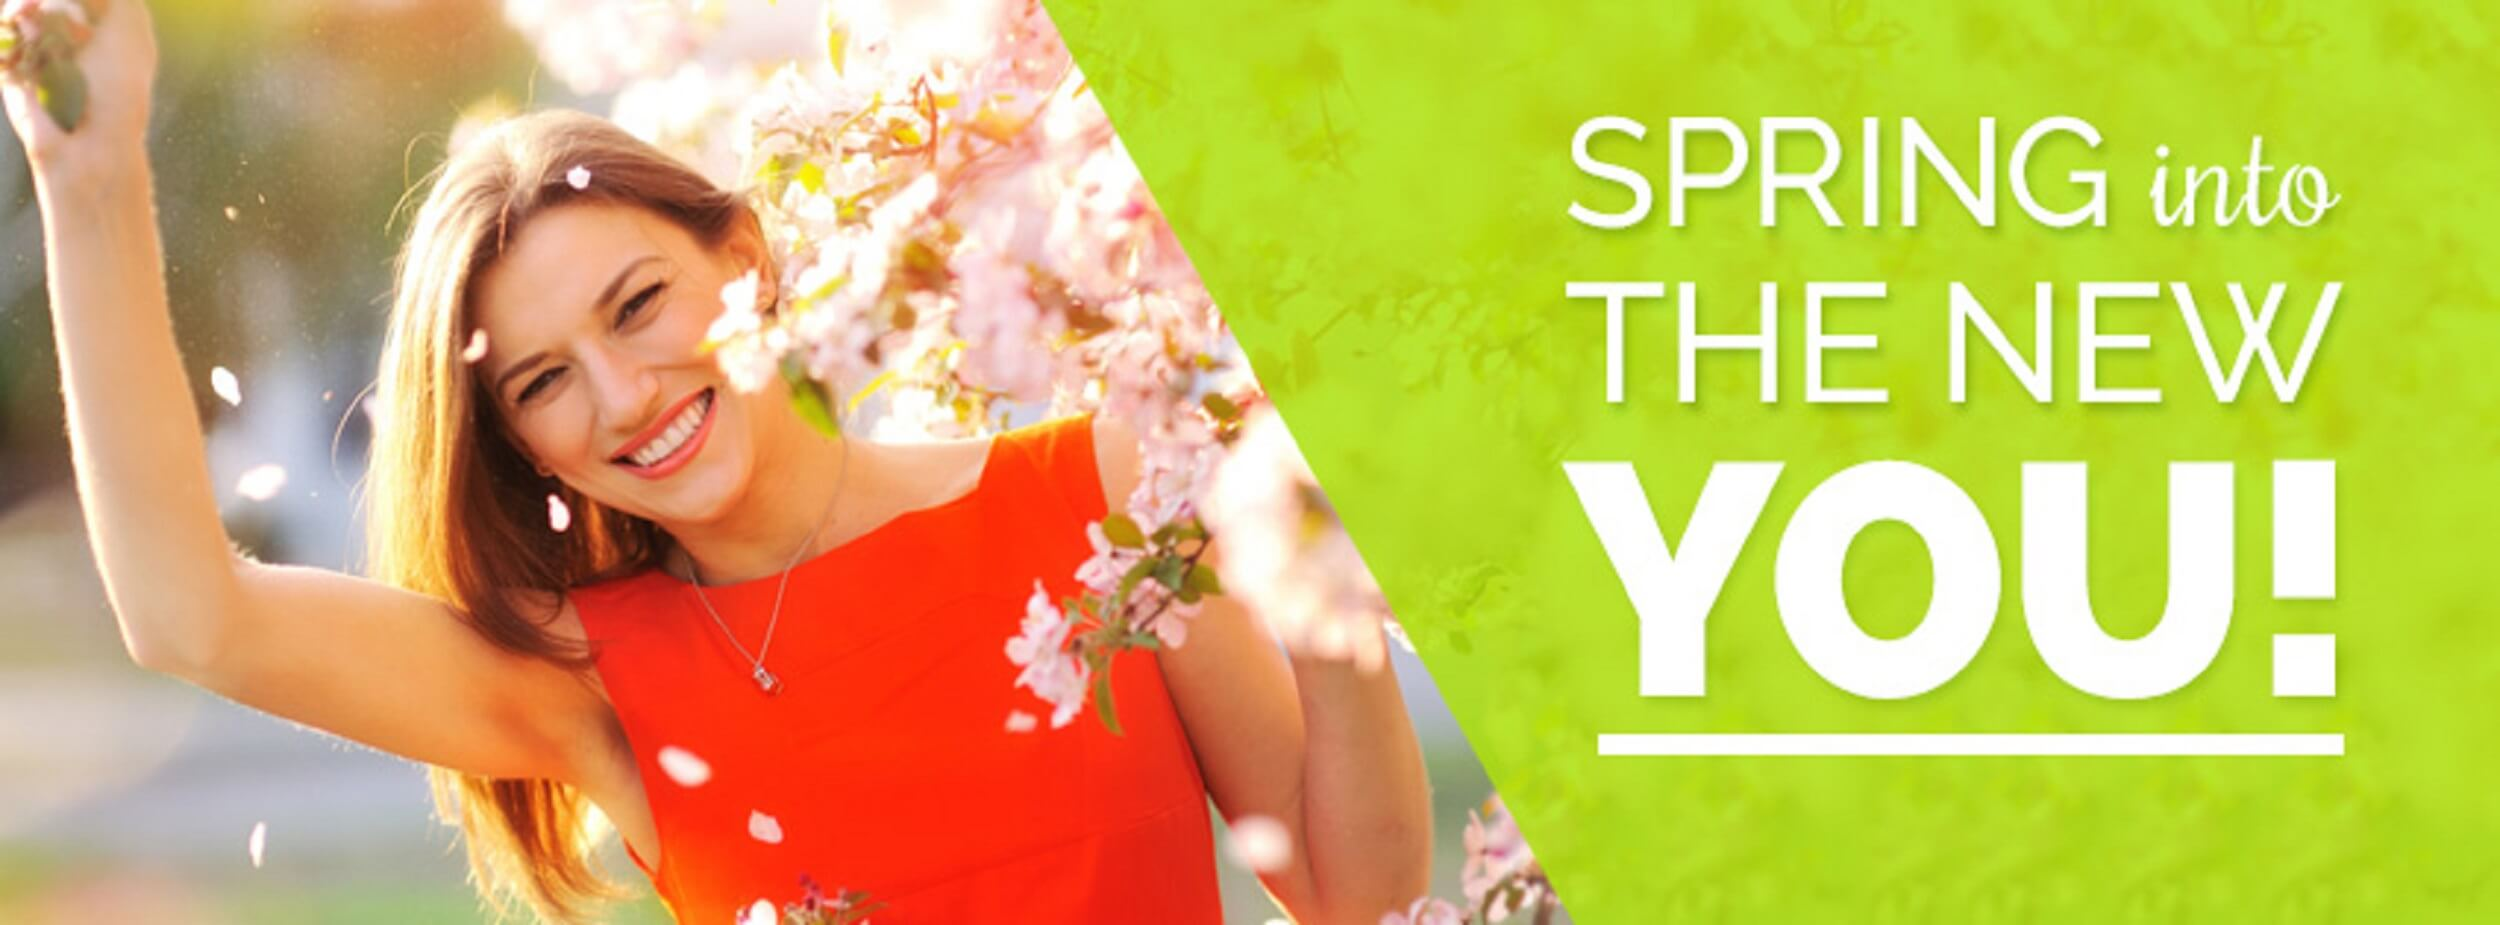 Spring into the new you!